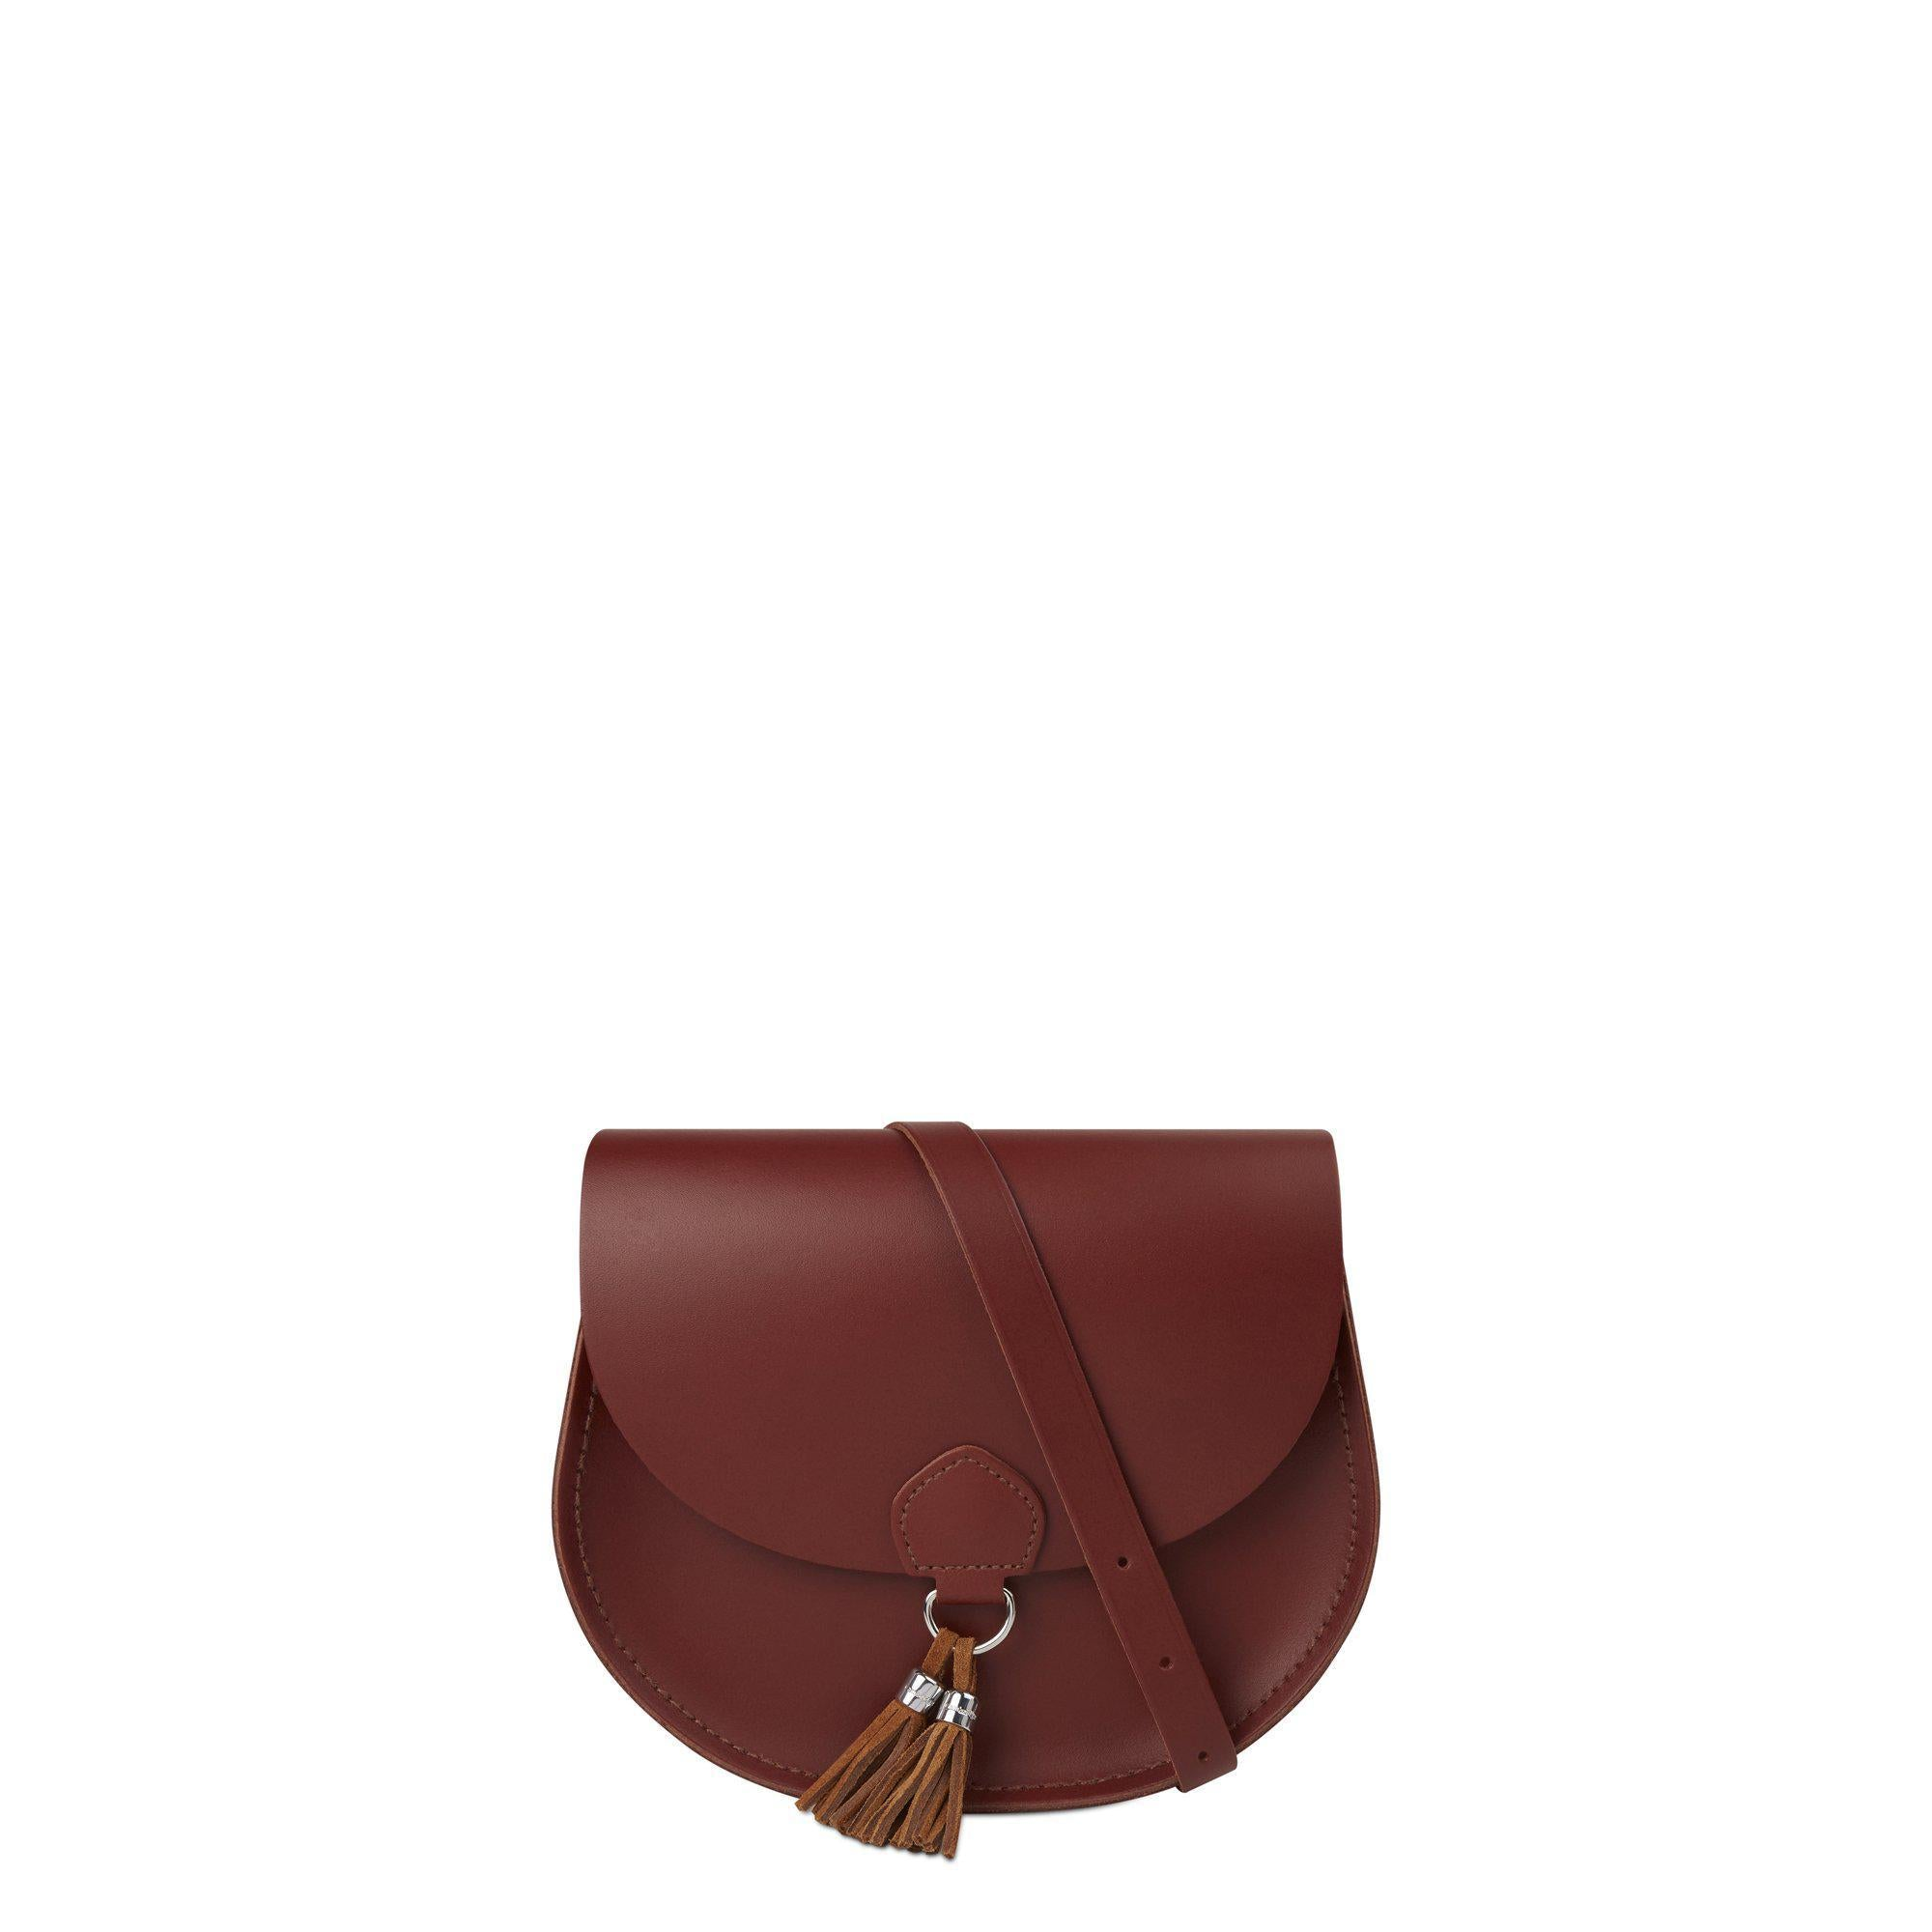 Tassel Bag in Leather - Brandy & Vintage Suede